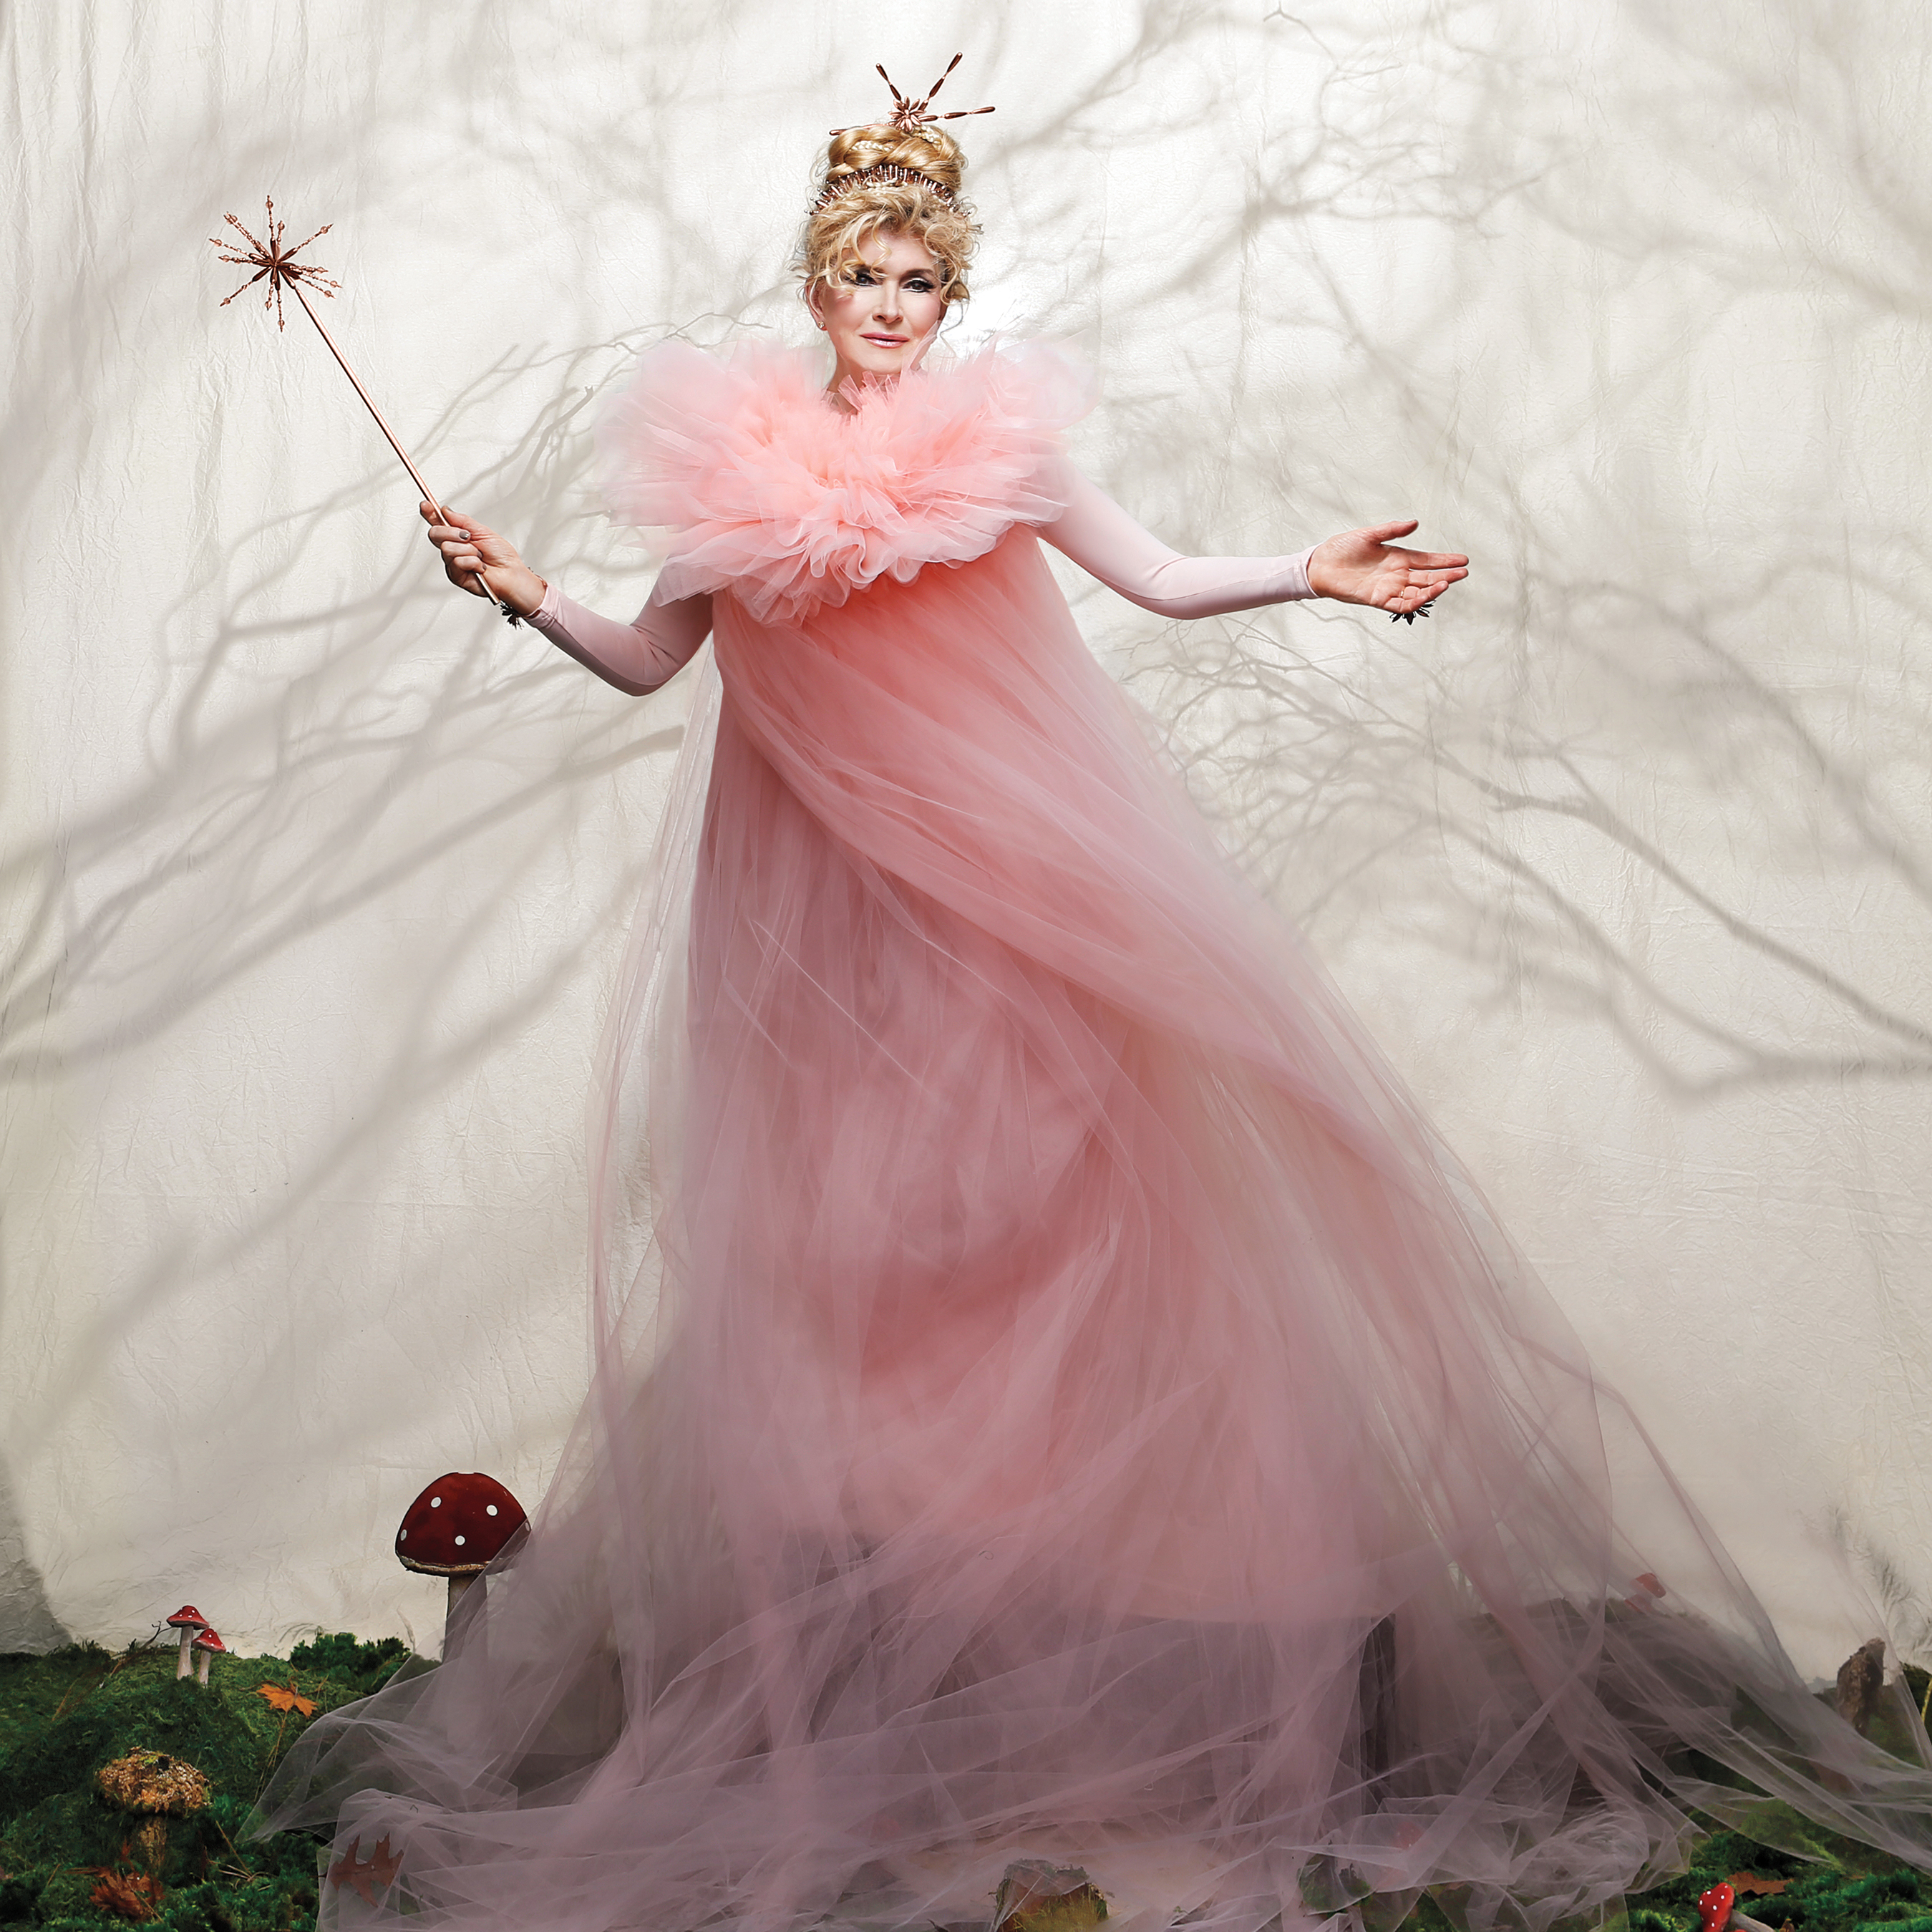 Martha Stewart in her Halloween costume as Fairy GrandMartha